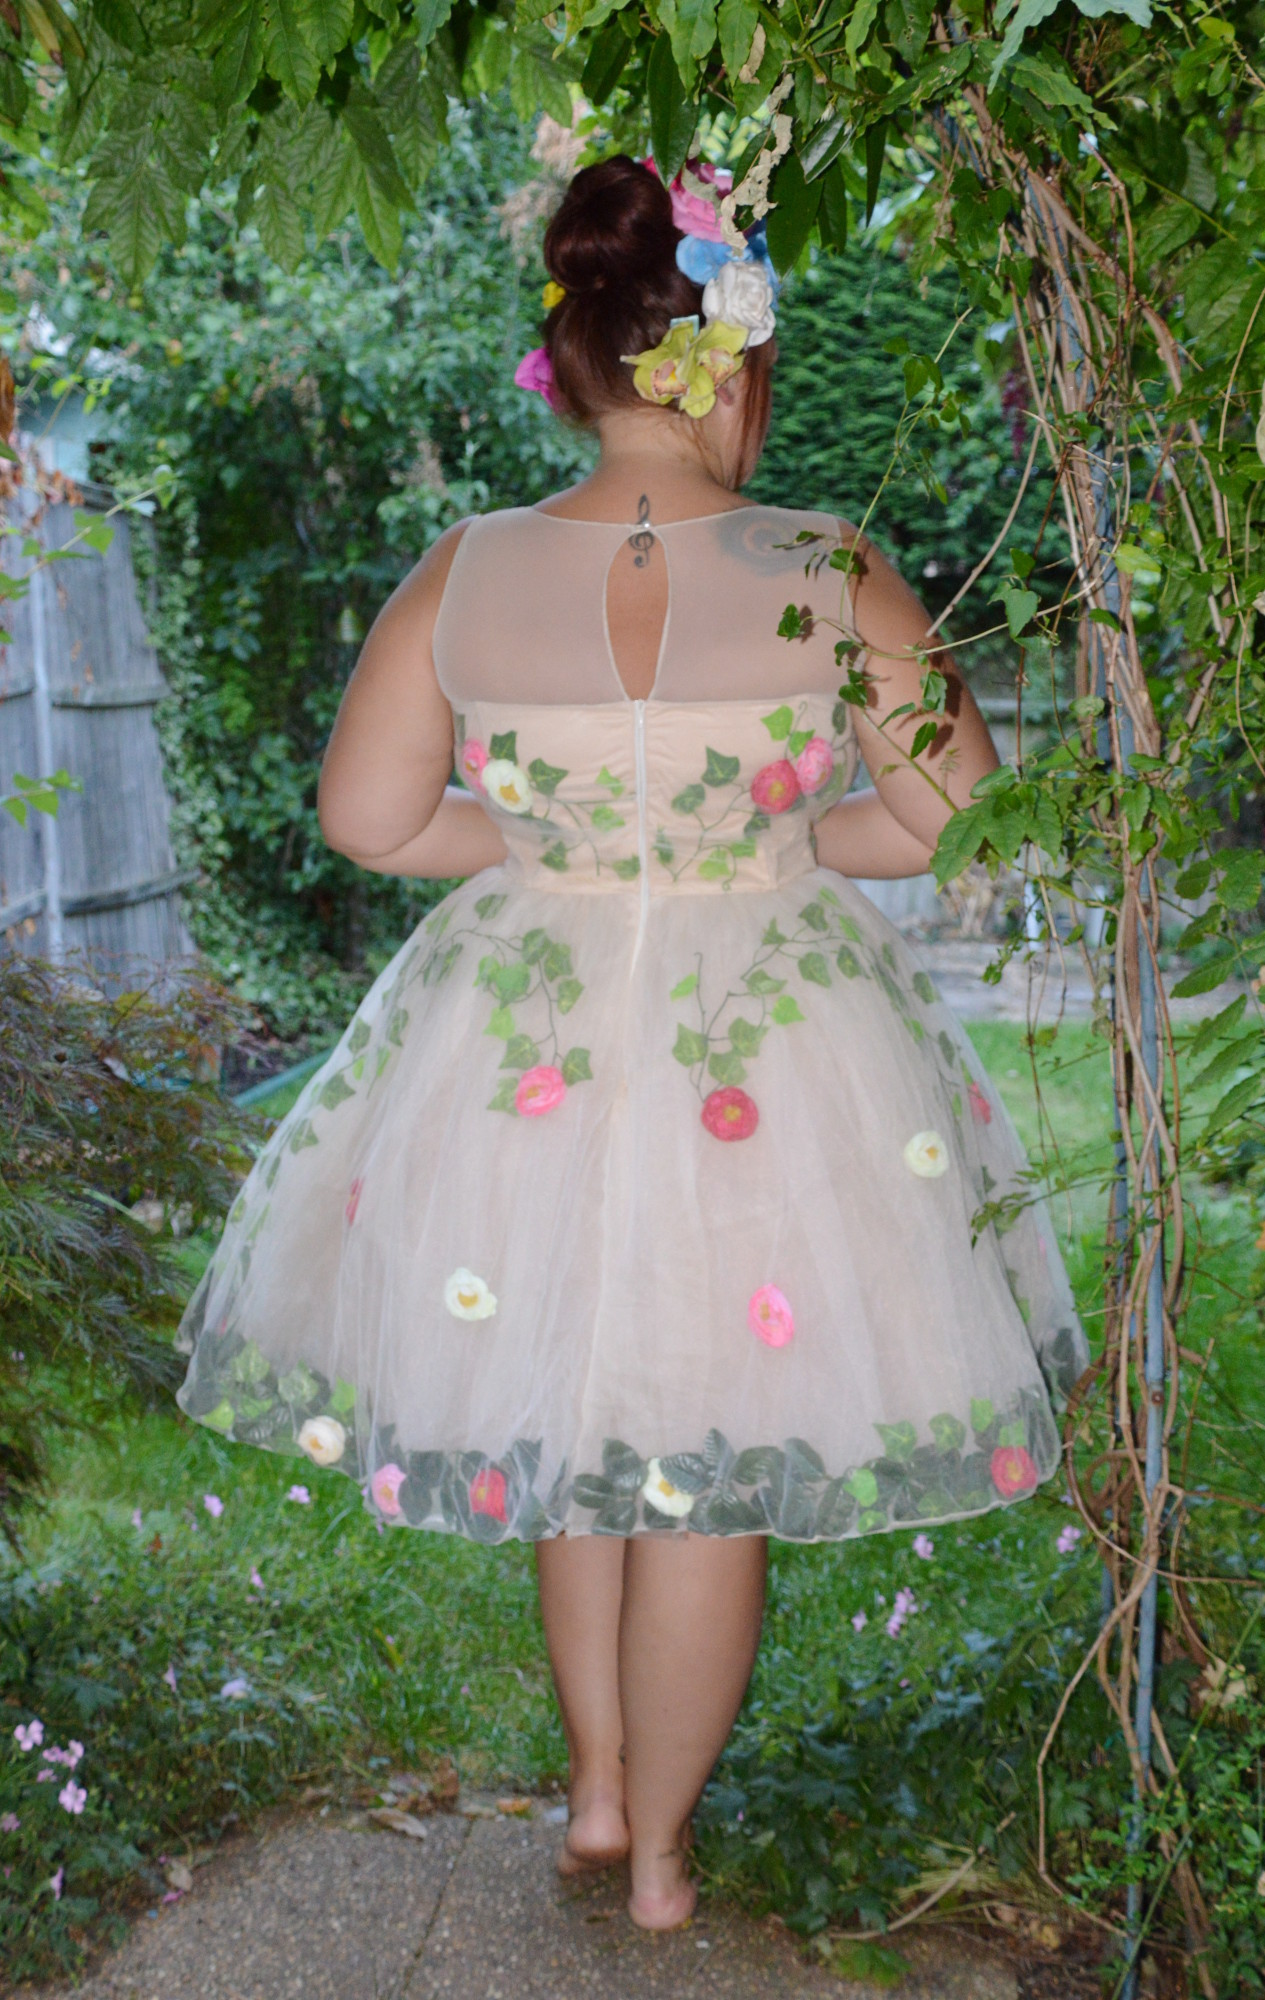 The dress garden - The Dress Itself Is Comfy To Wear But There Is A Lot Of It Sitting Down On Tubes And In Restaurants On A Monday Night In It Took A Little Skirt